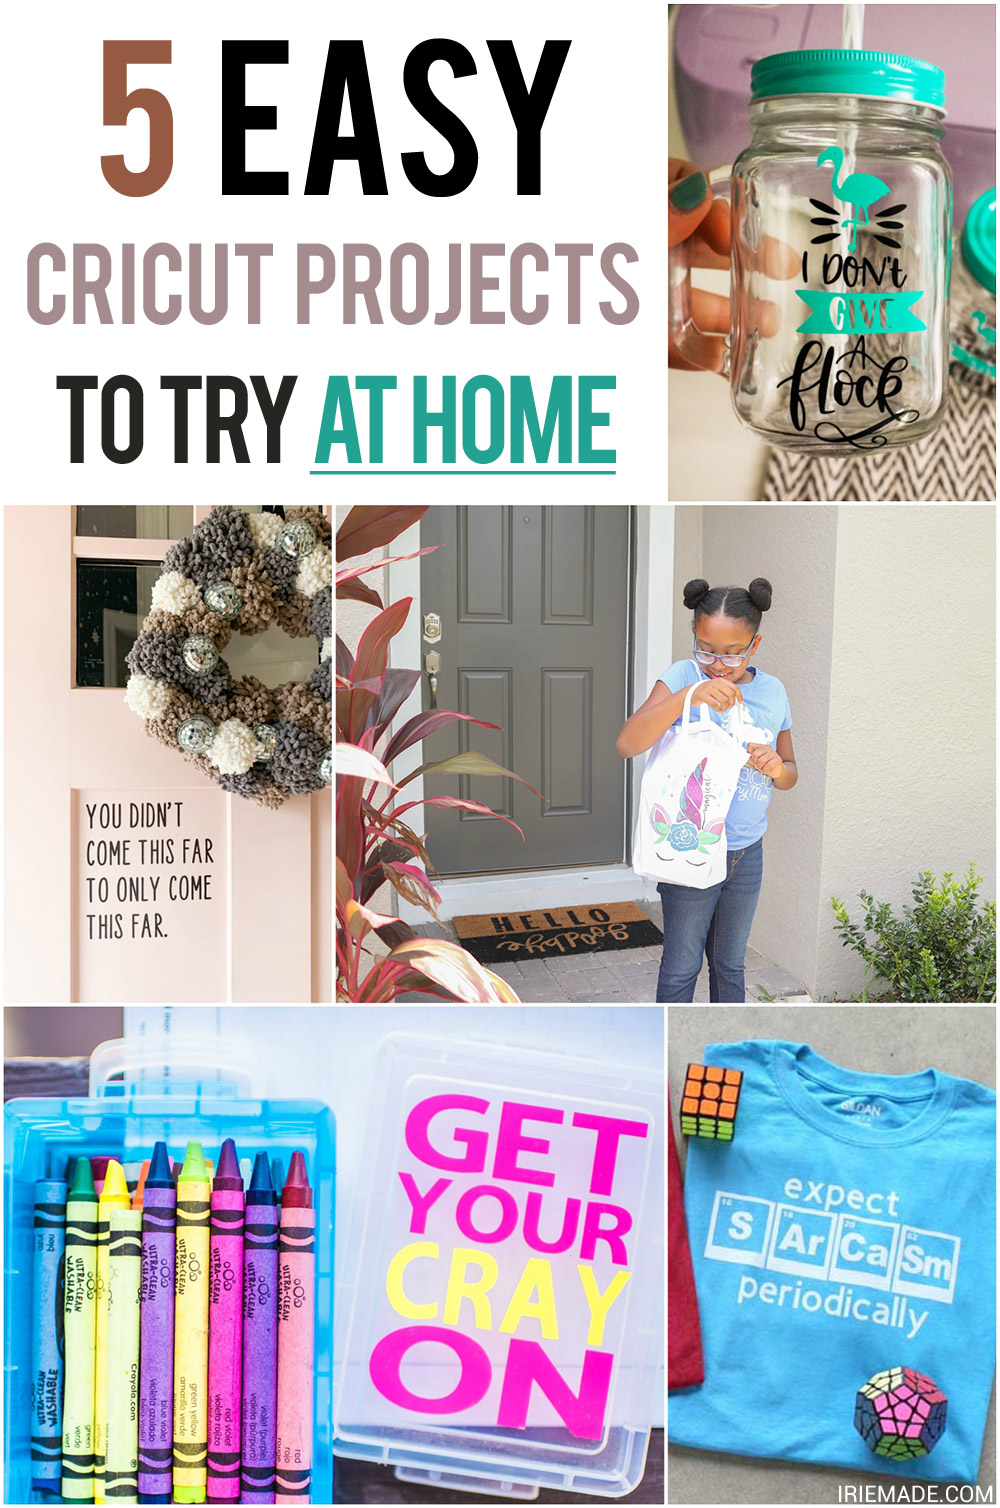 5 Easy Cricut Projects to Try While Staying at Home